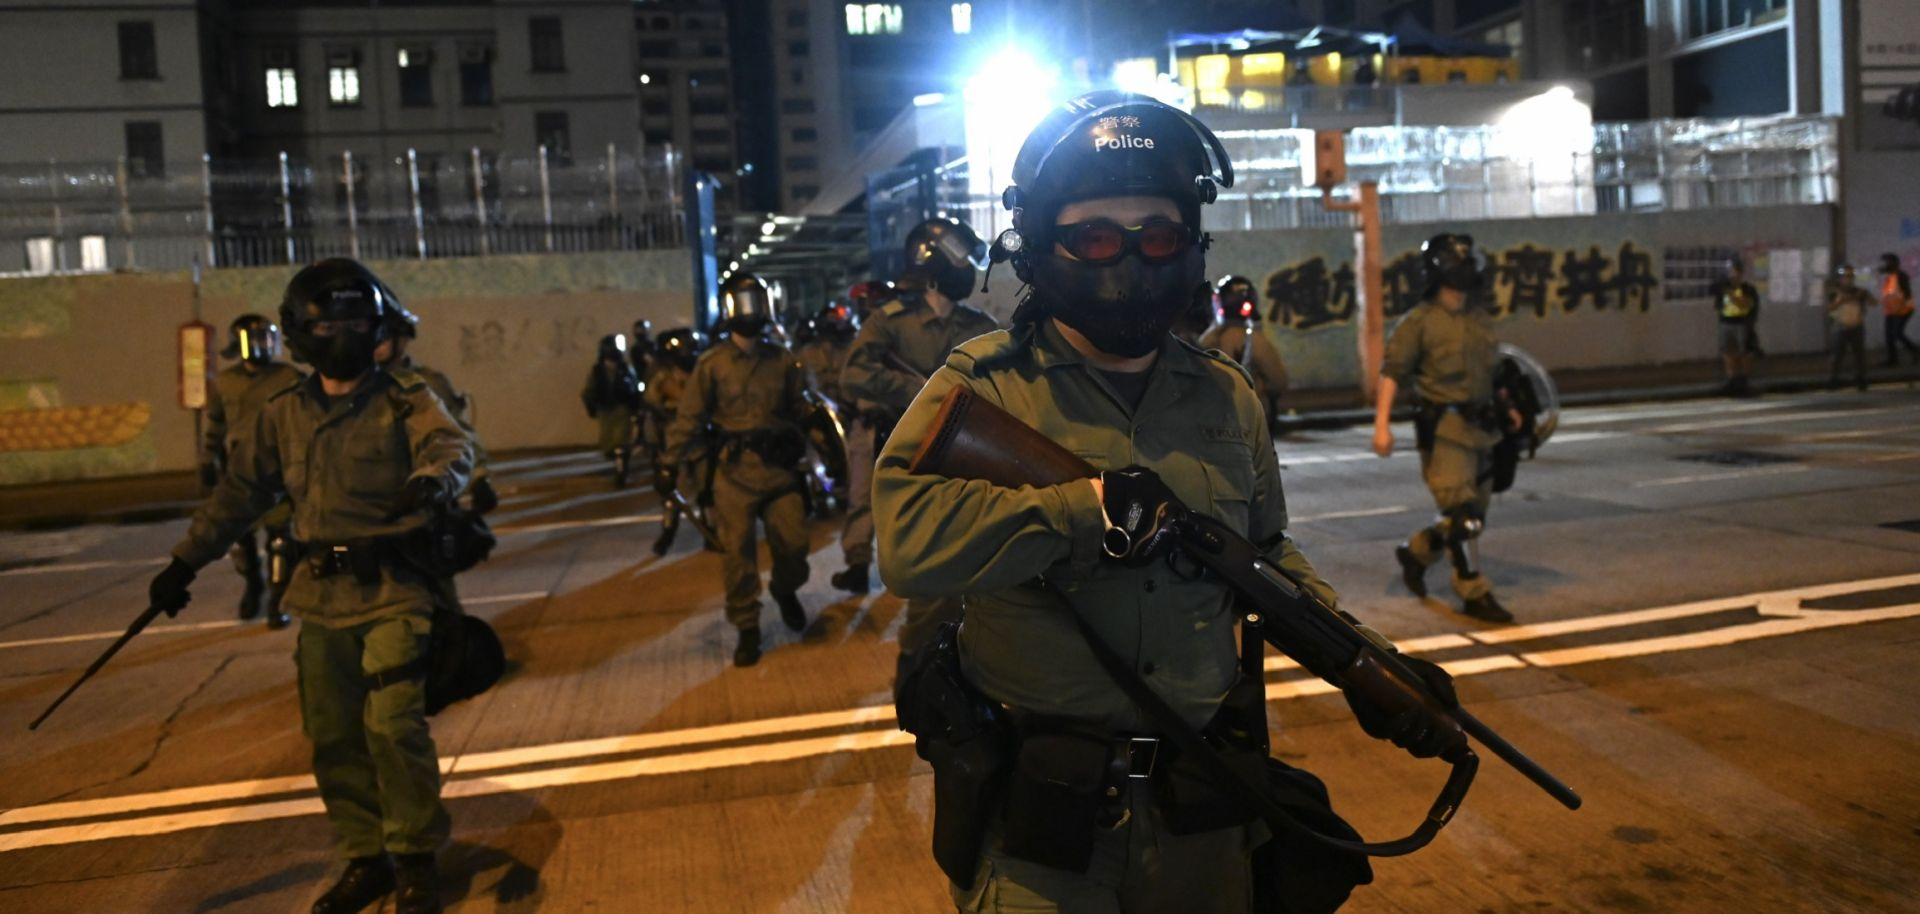 This photo shows riot police in Hong Kong standing guard outside a police station on Oct. 7, 2019.